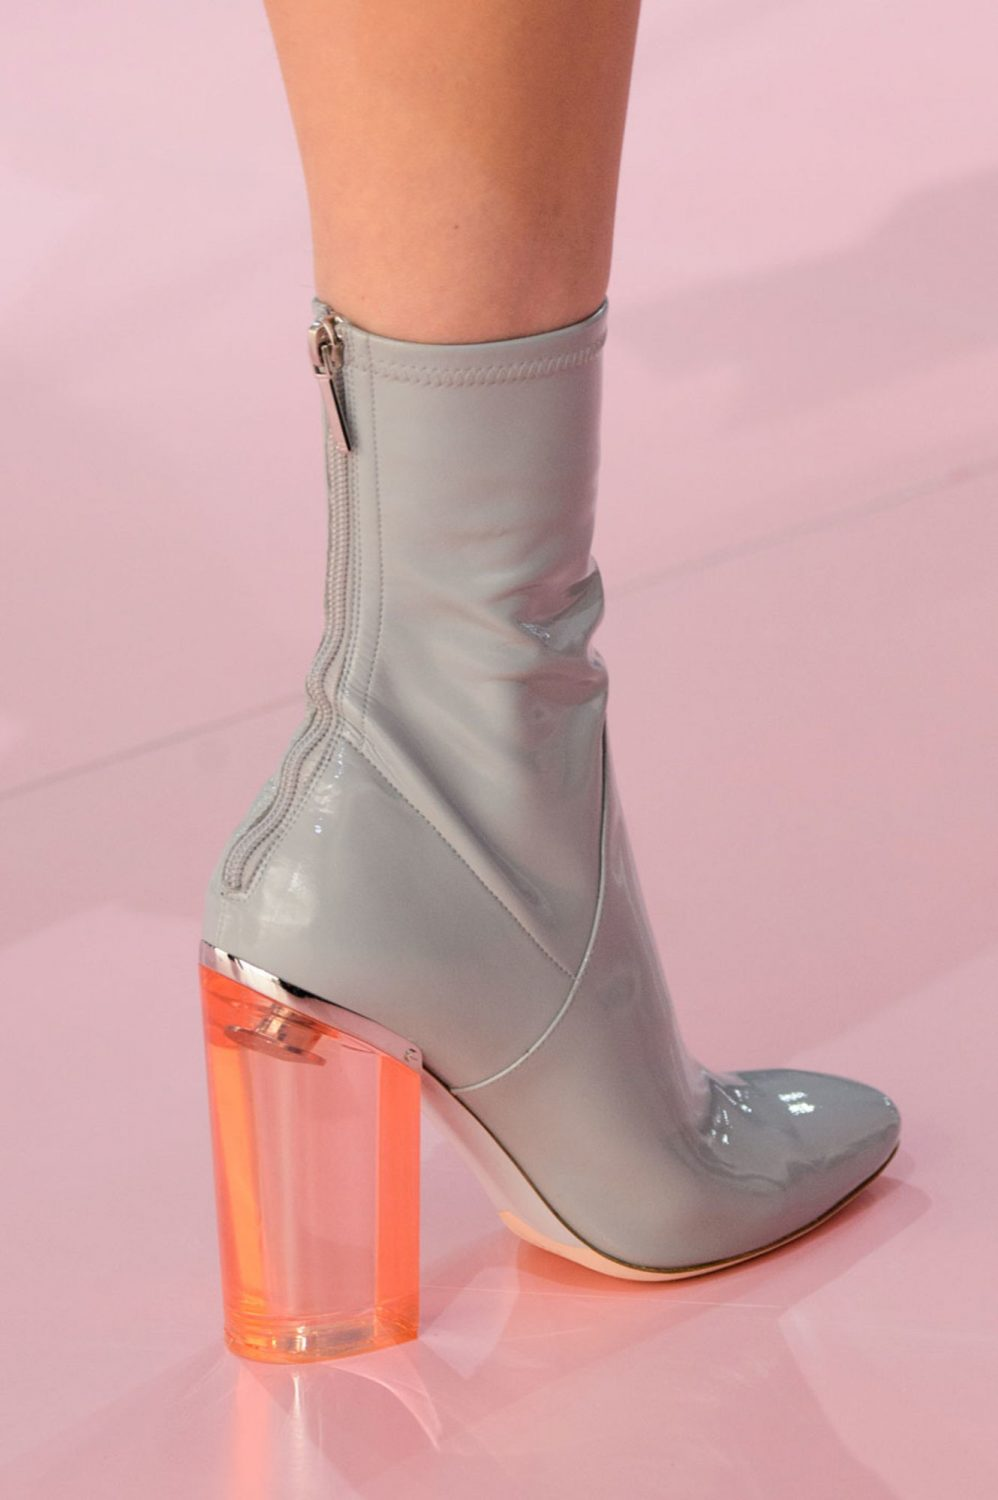 The Best Shoes from Fall 2015 Fashion Week's Runway Shows